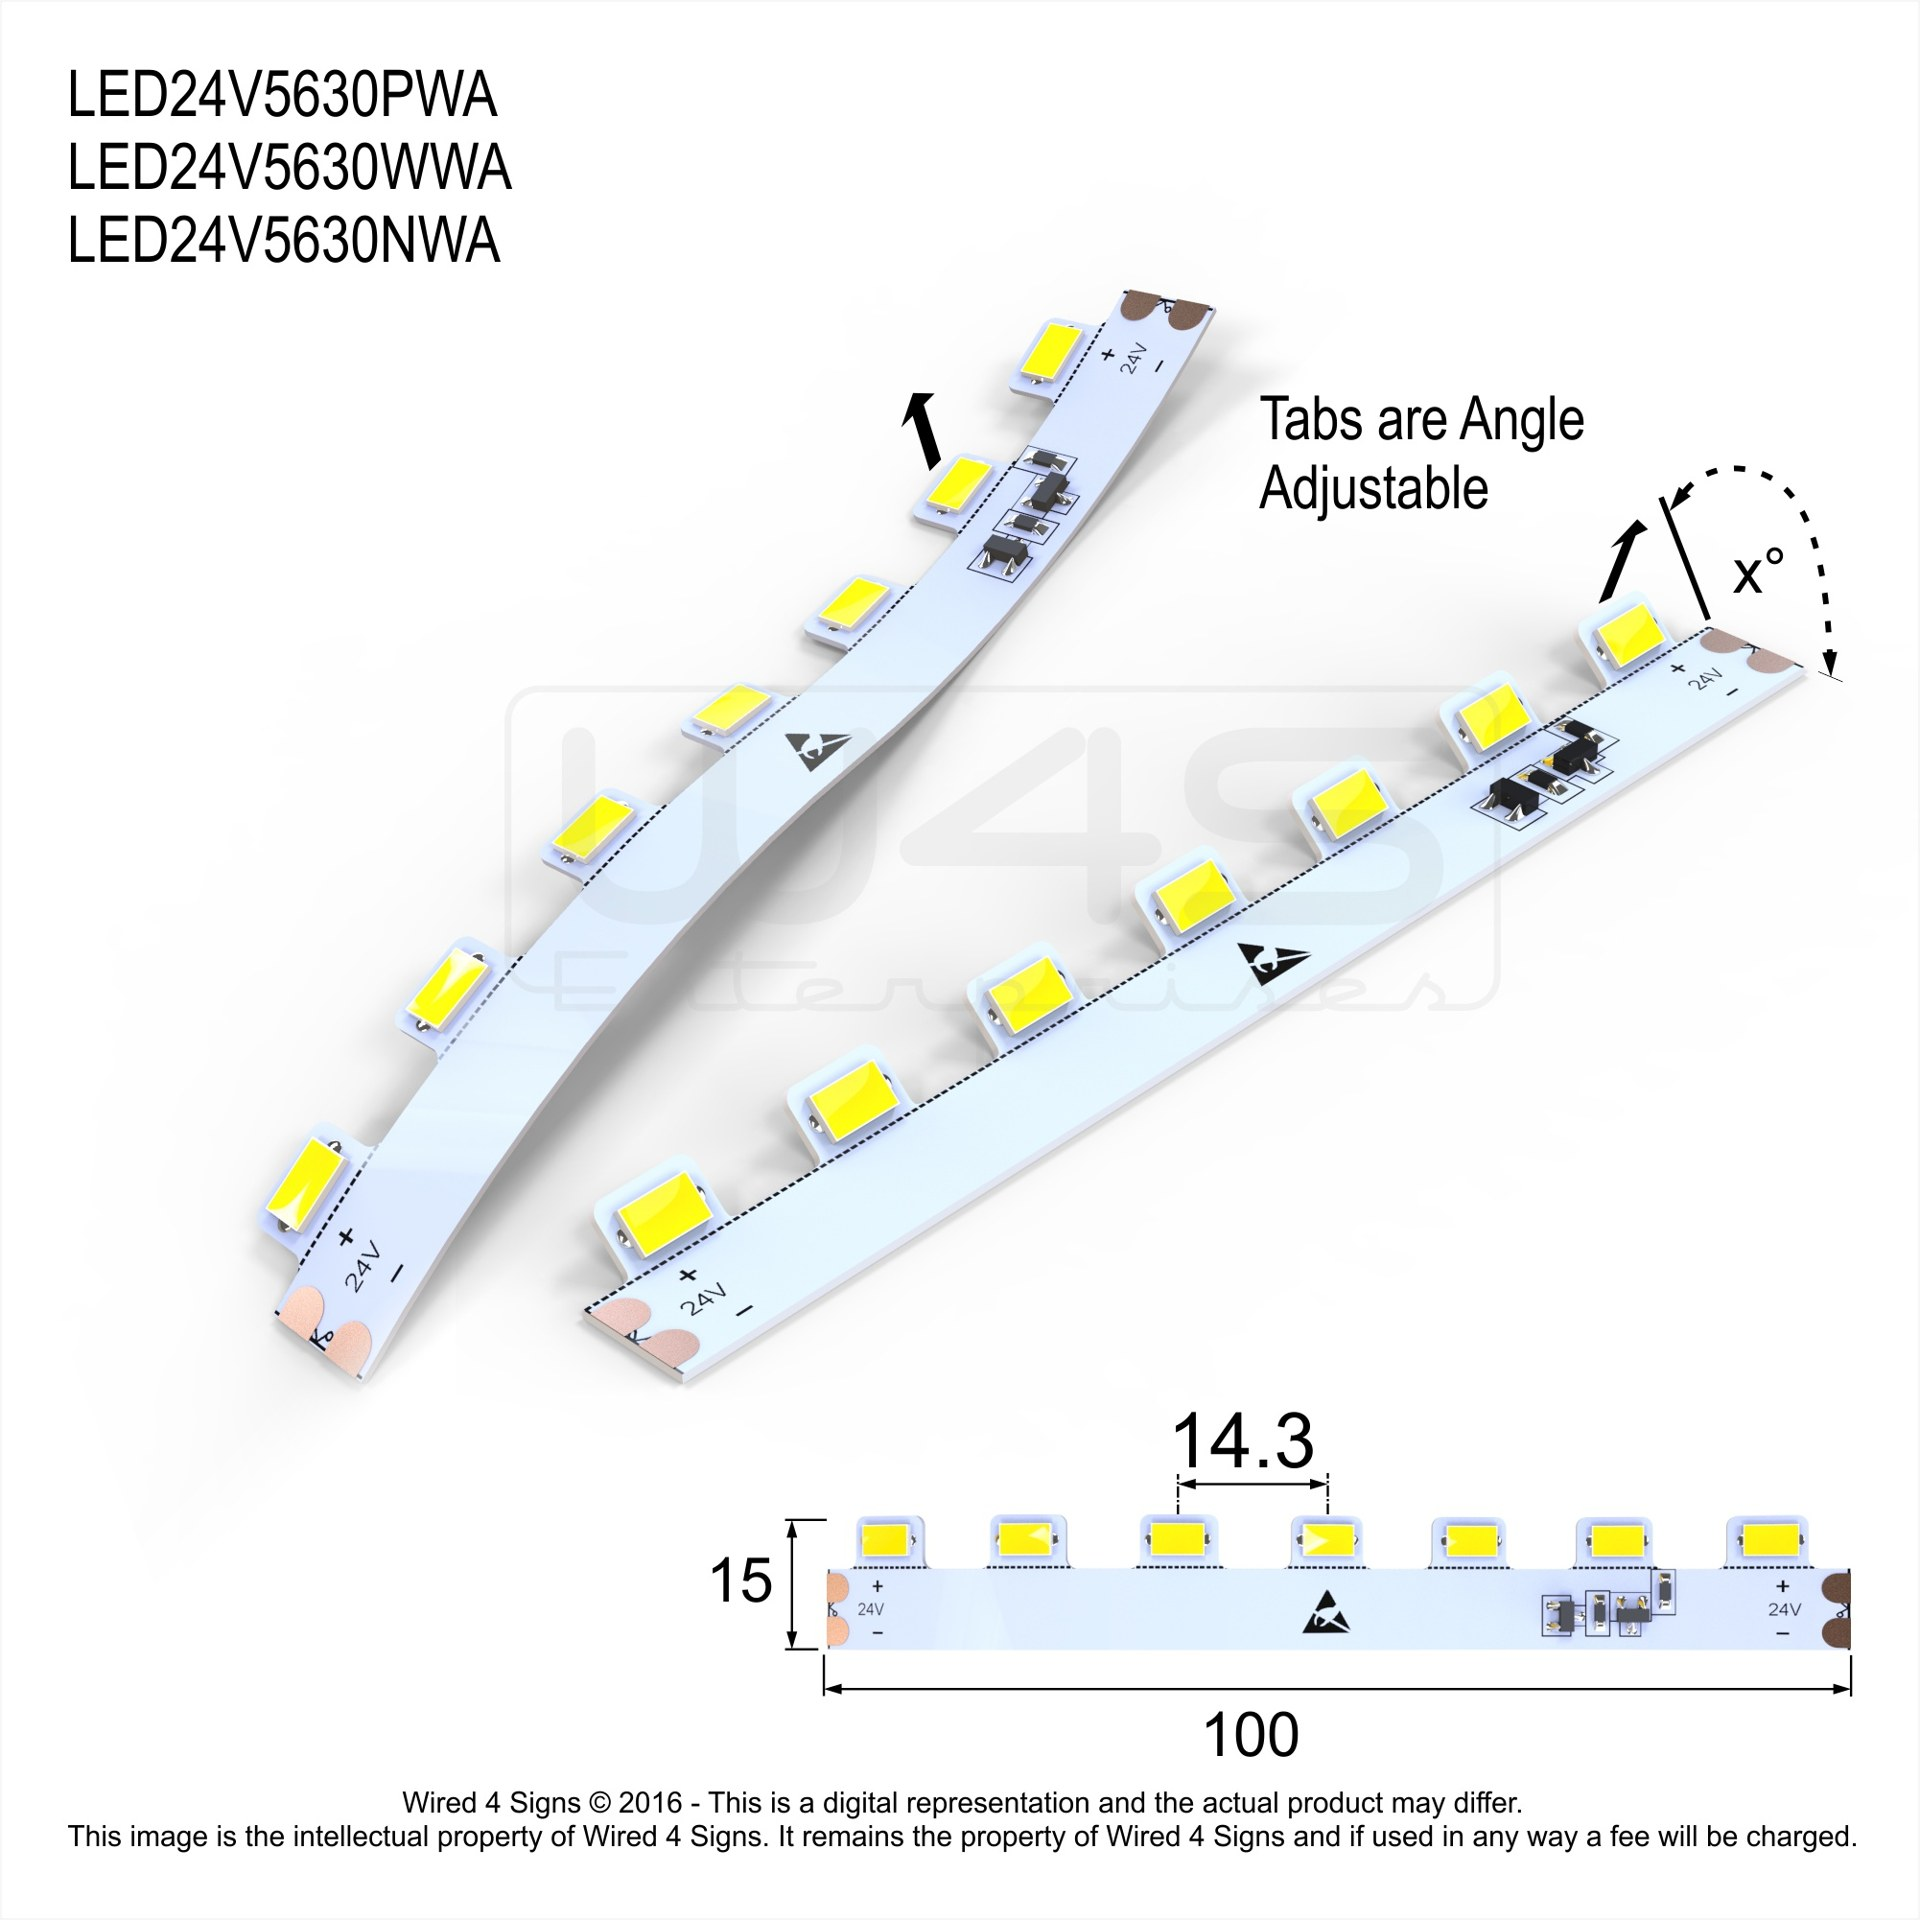 Led Flexible Strip Lighting Perspex South Africa Previously 12v Addressable Wiring Diagram Lights Durban